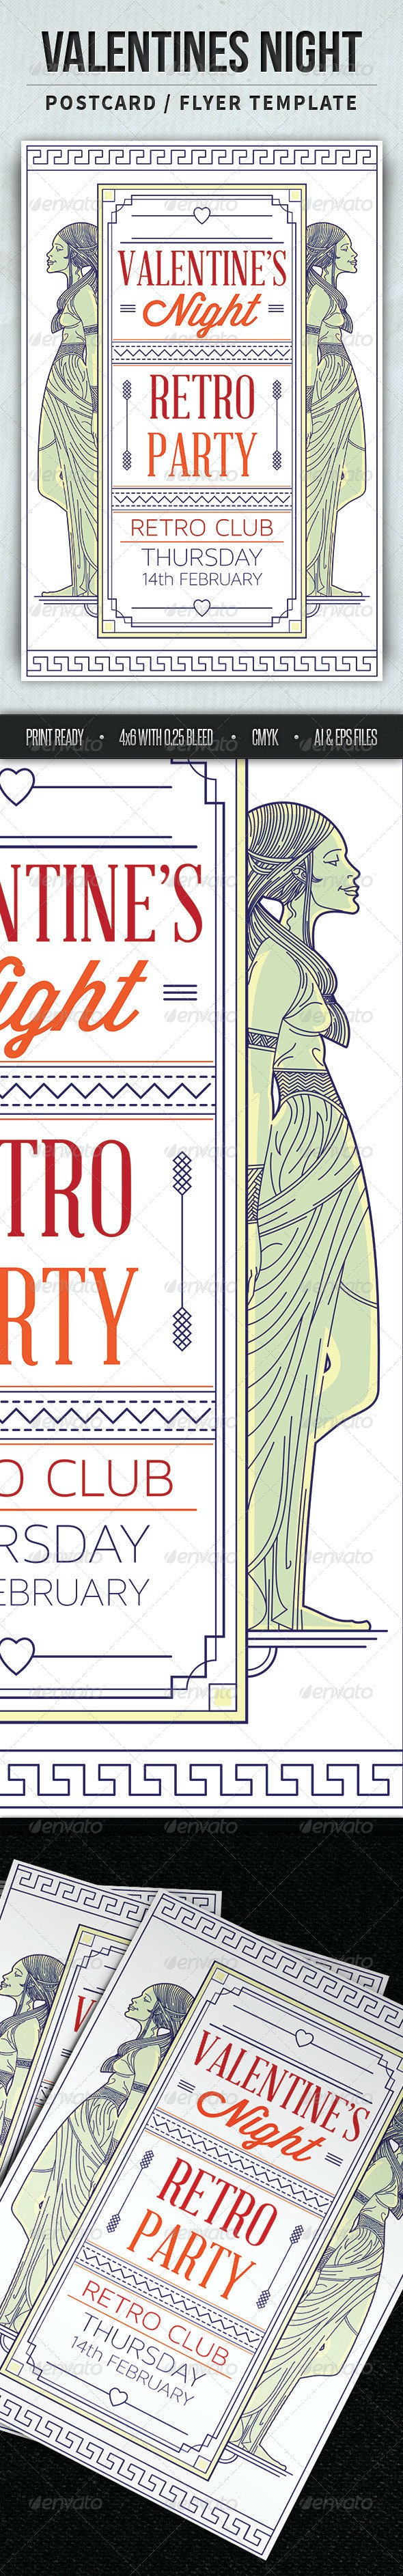 V-Day Retro Party Flyer/Post Card - Events Flyers